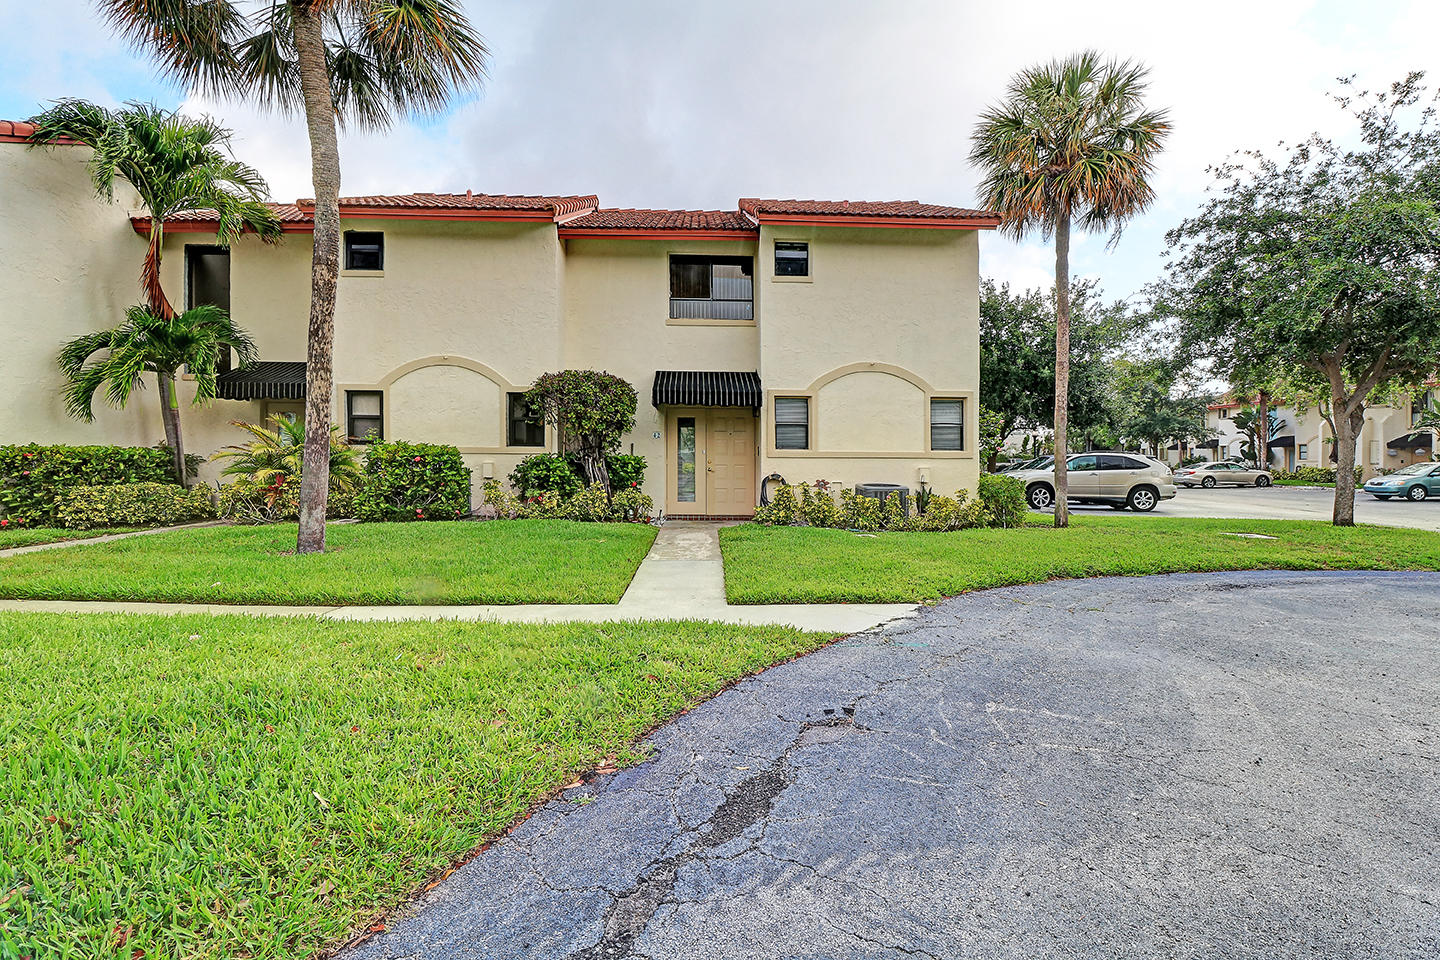 Boca Raton- Florida 33487, 2 Bedrooms Bedrooms, ,1 BathroomBathrooms,Residential,For Sale,2nd,RX-10530351